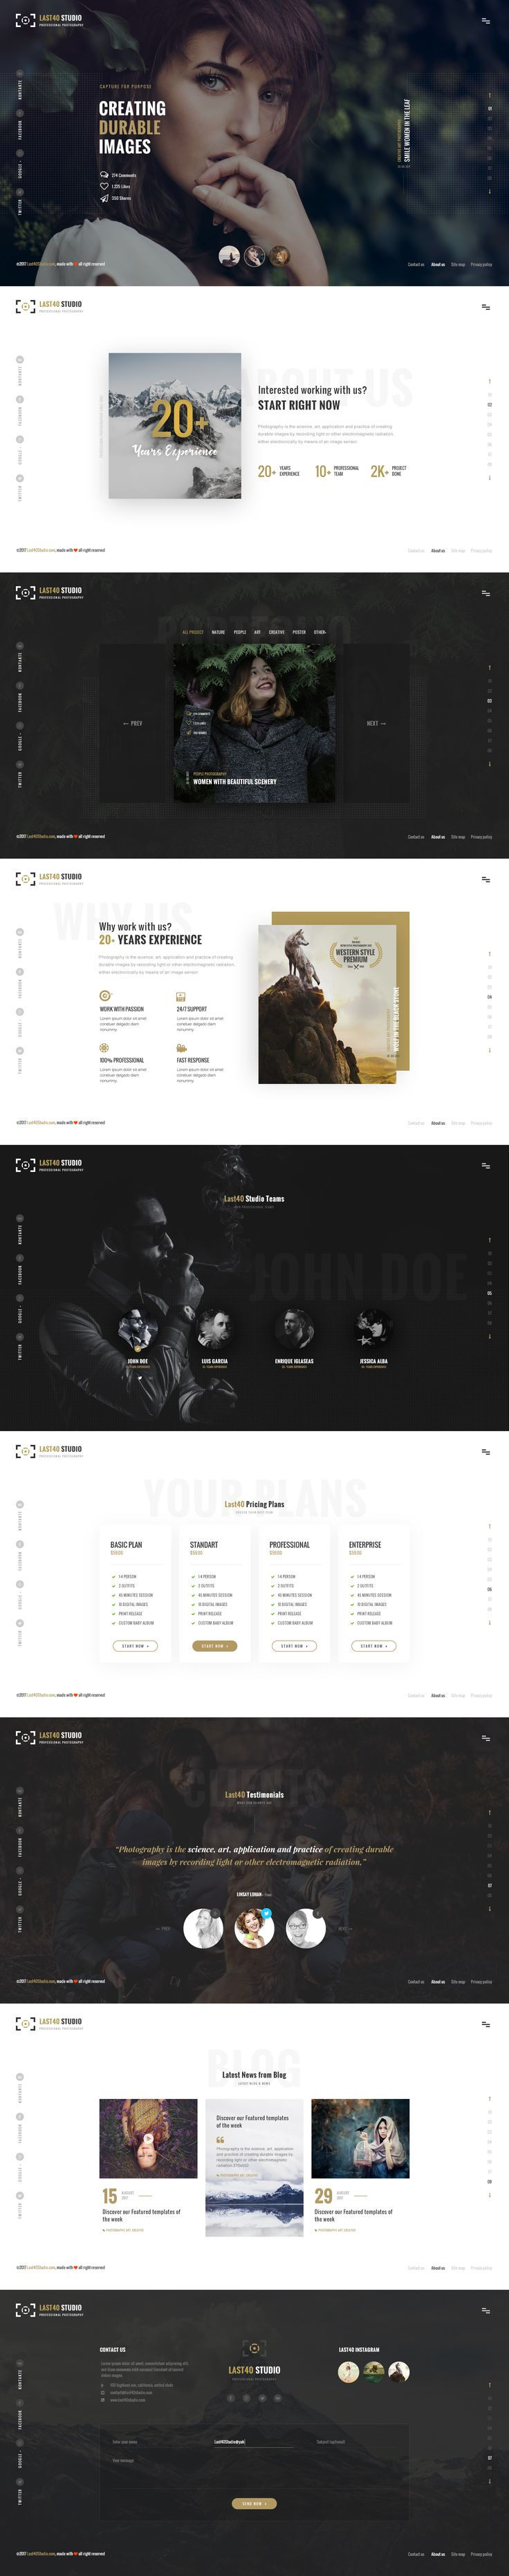 Last40 Studio – Creative PSD Template is a unique and creative Portfolio PSD template with clean and modern design. It is perfect choice for Personal Portfolio and Agency. It can be customized easily to suit your wishes.